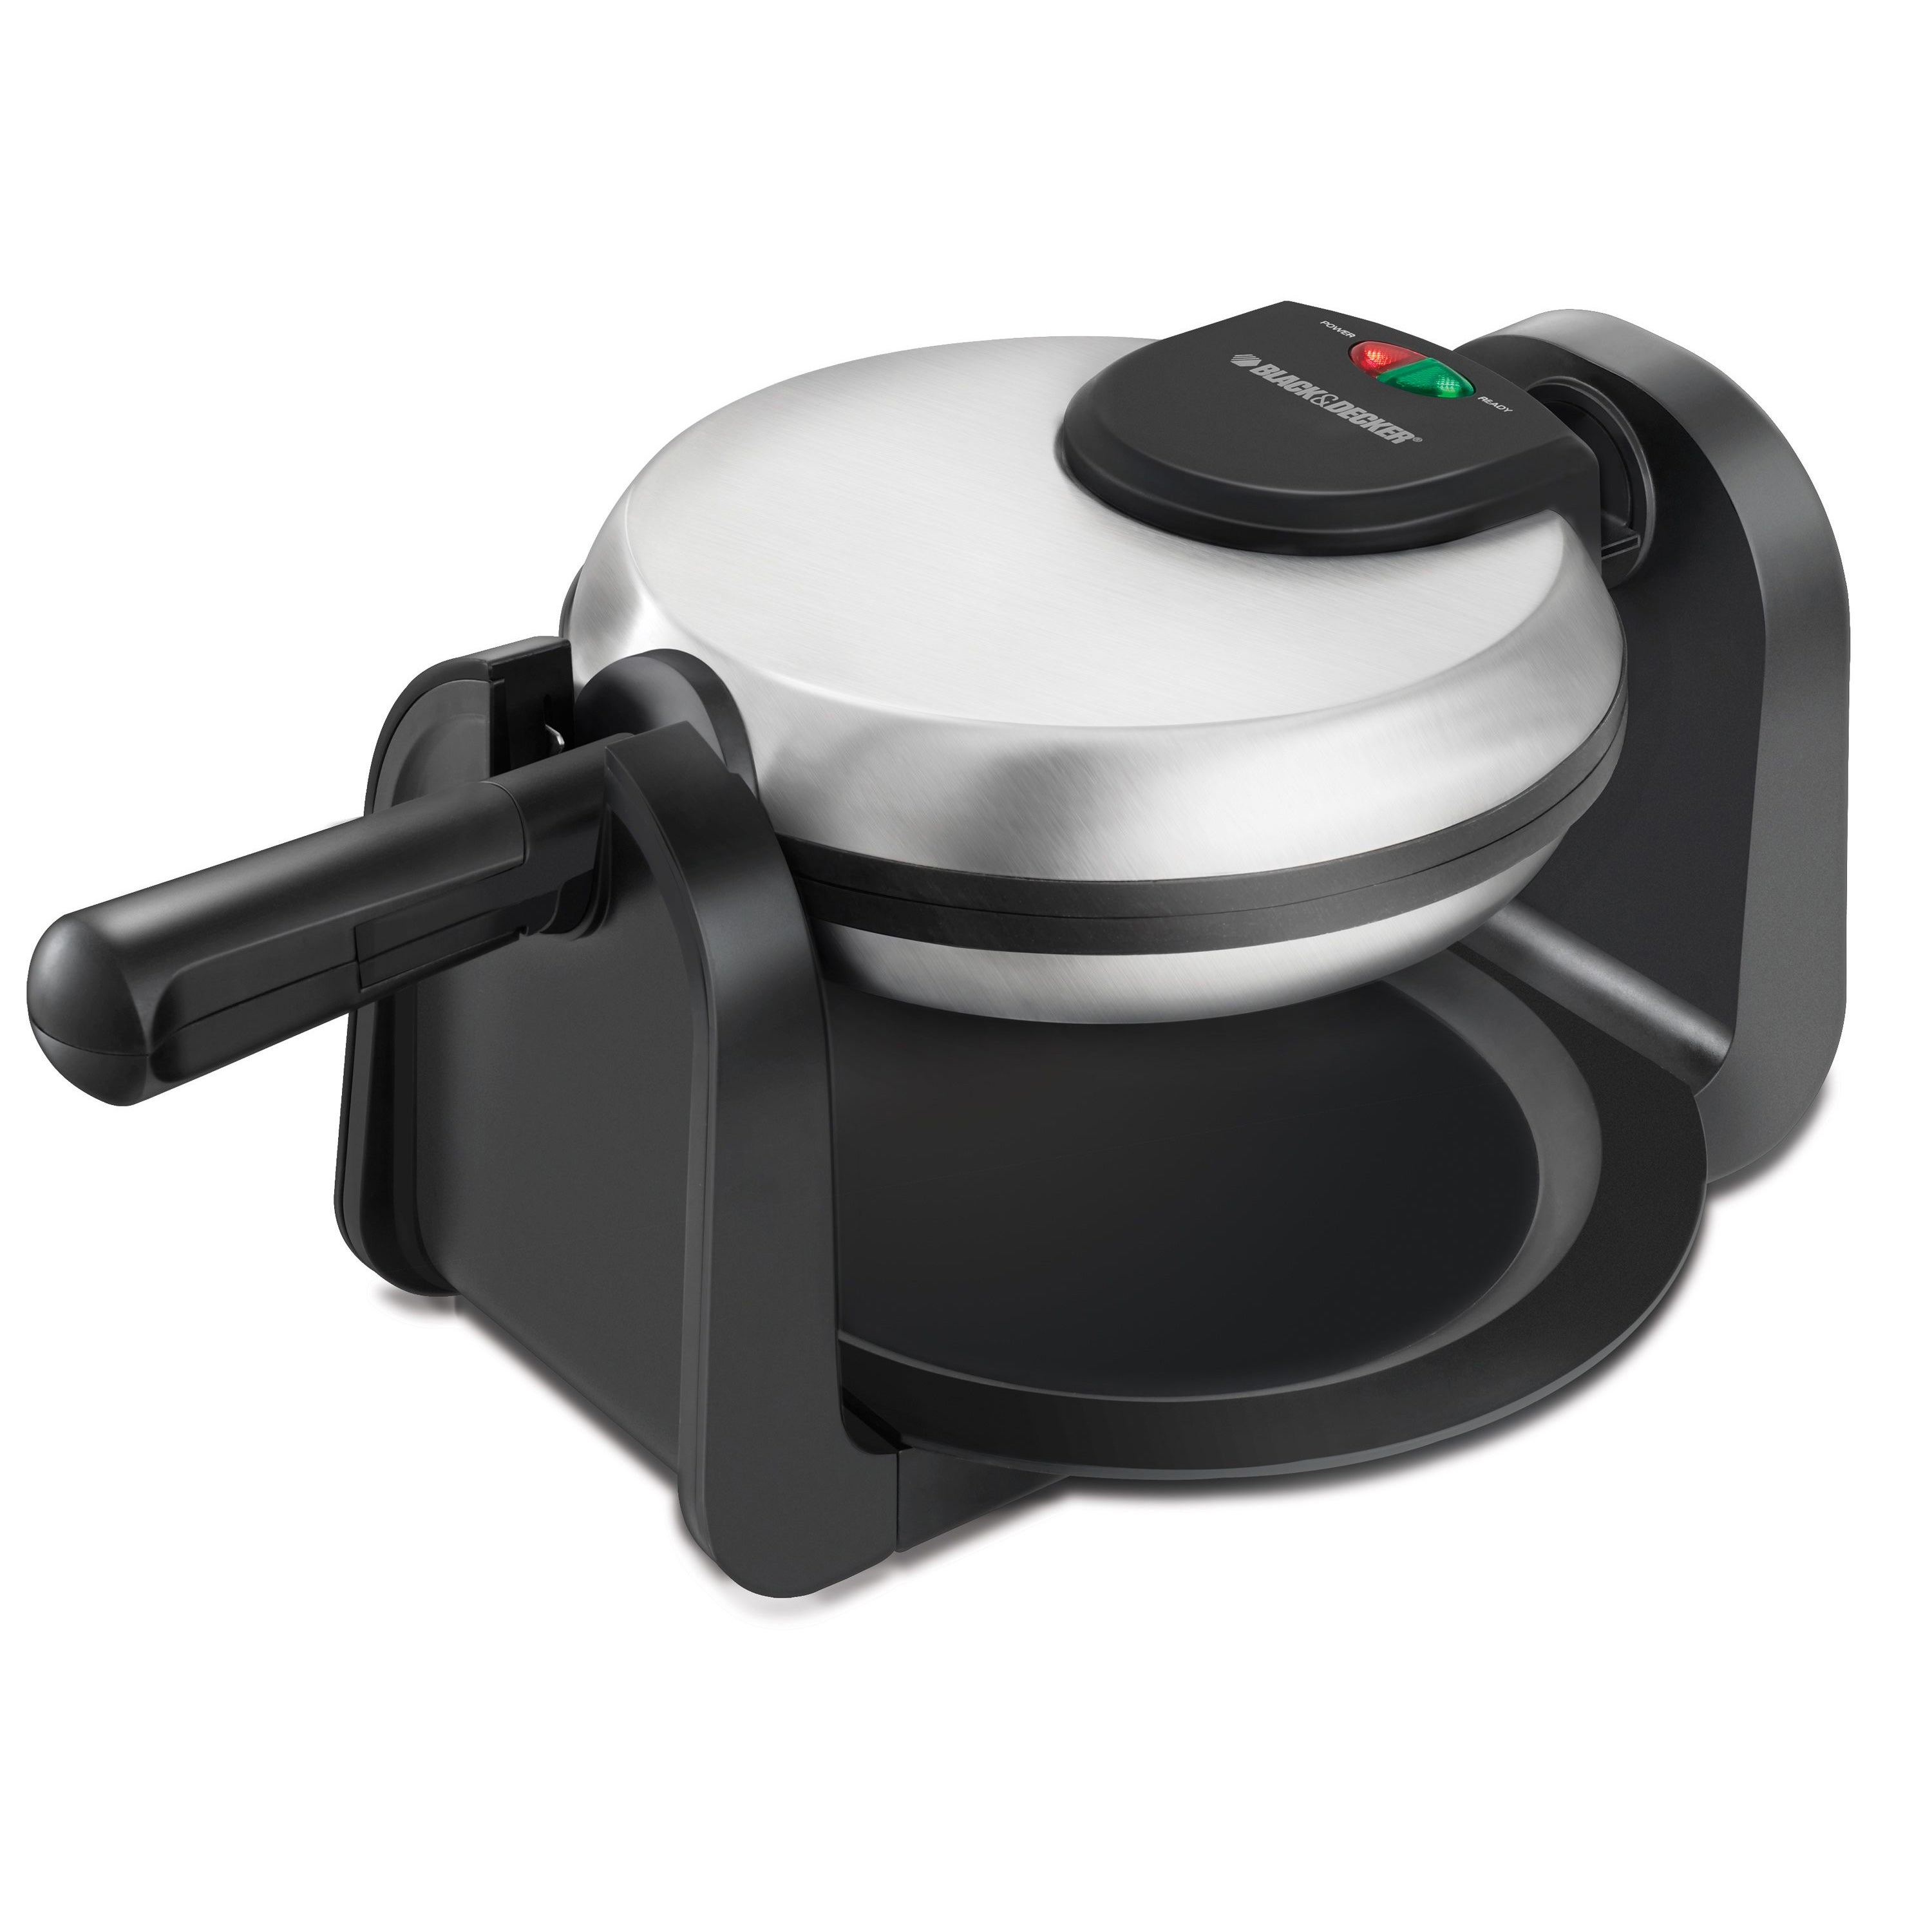 BLACK&DECKER Black & Decker Rotary Waffle Maker at Sears.com